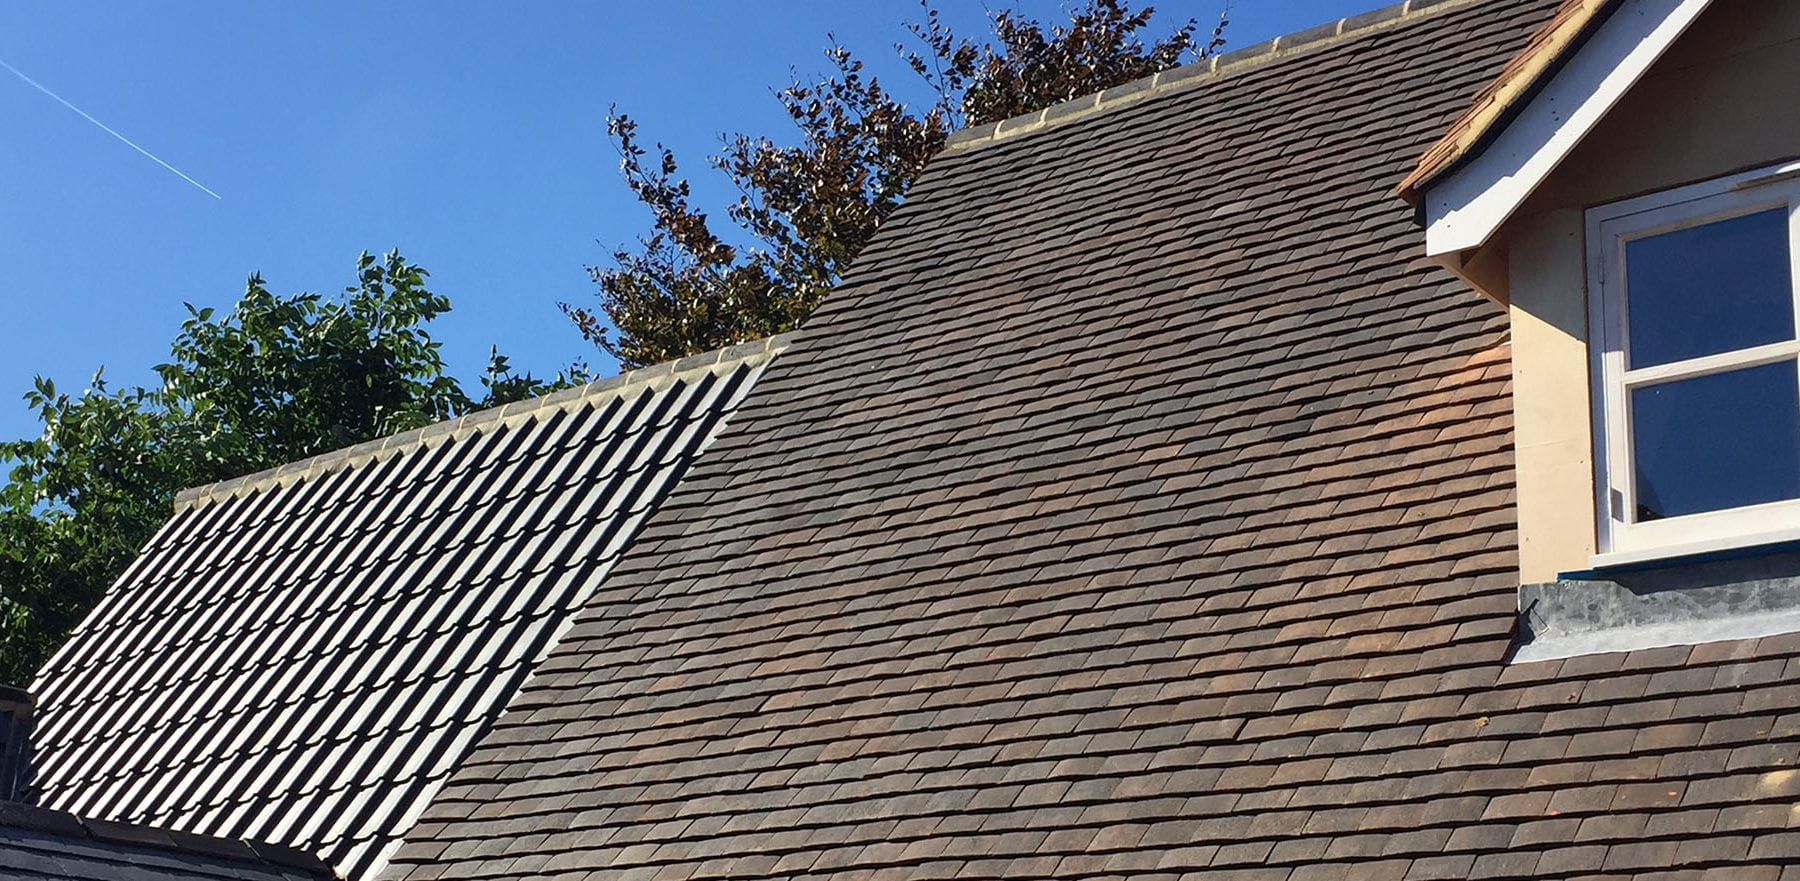 Lifestiles - Handcrafted Kingston Clay Roof Tiles - Essex, England 2